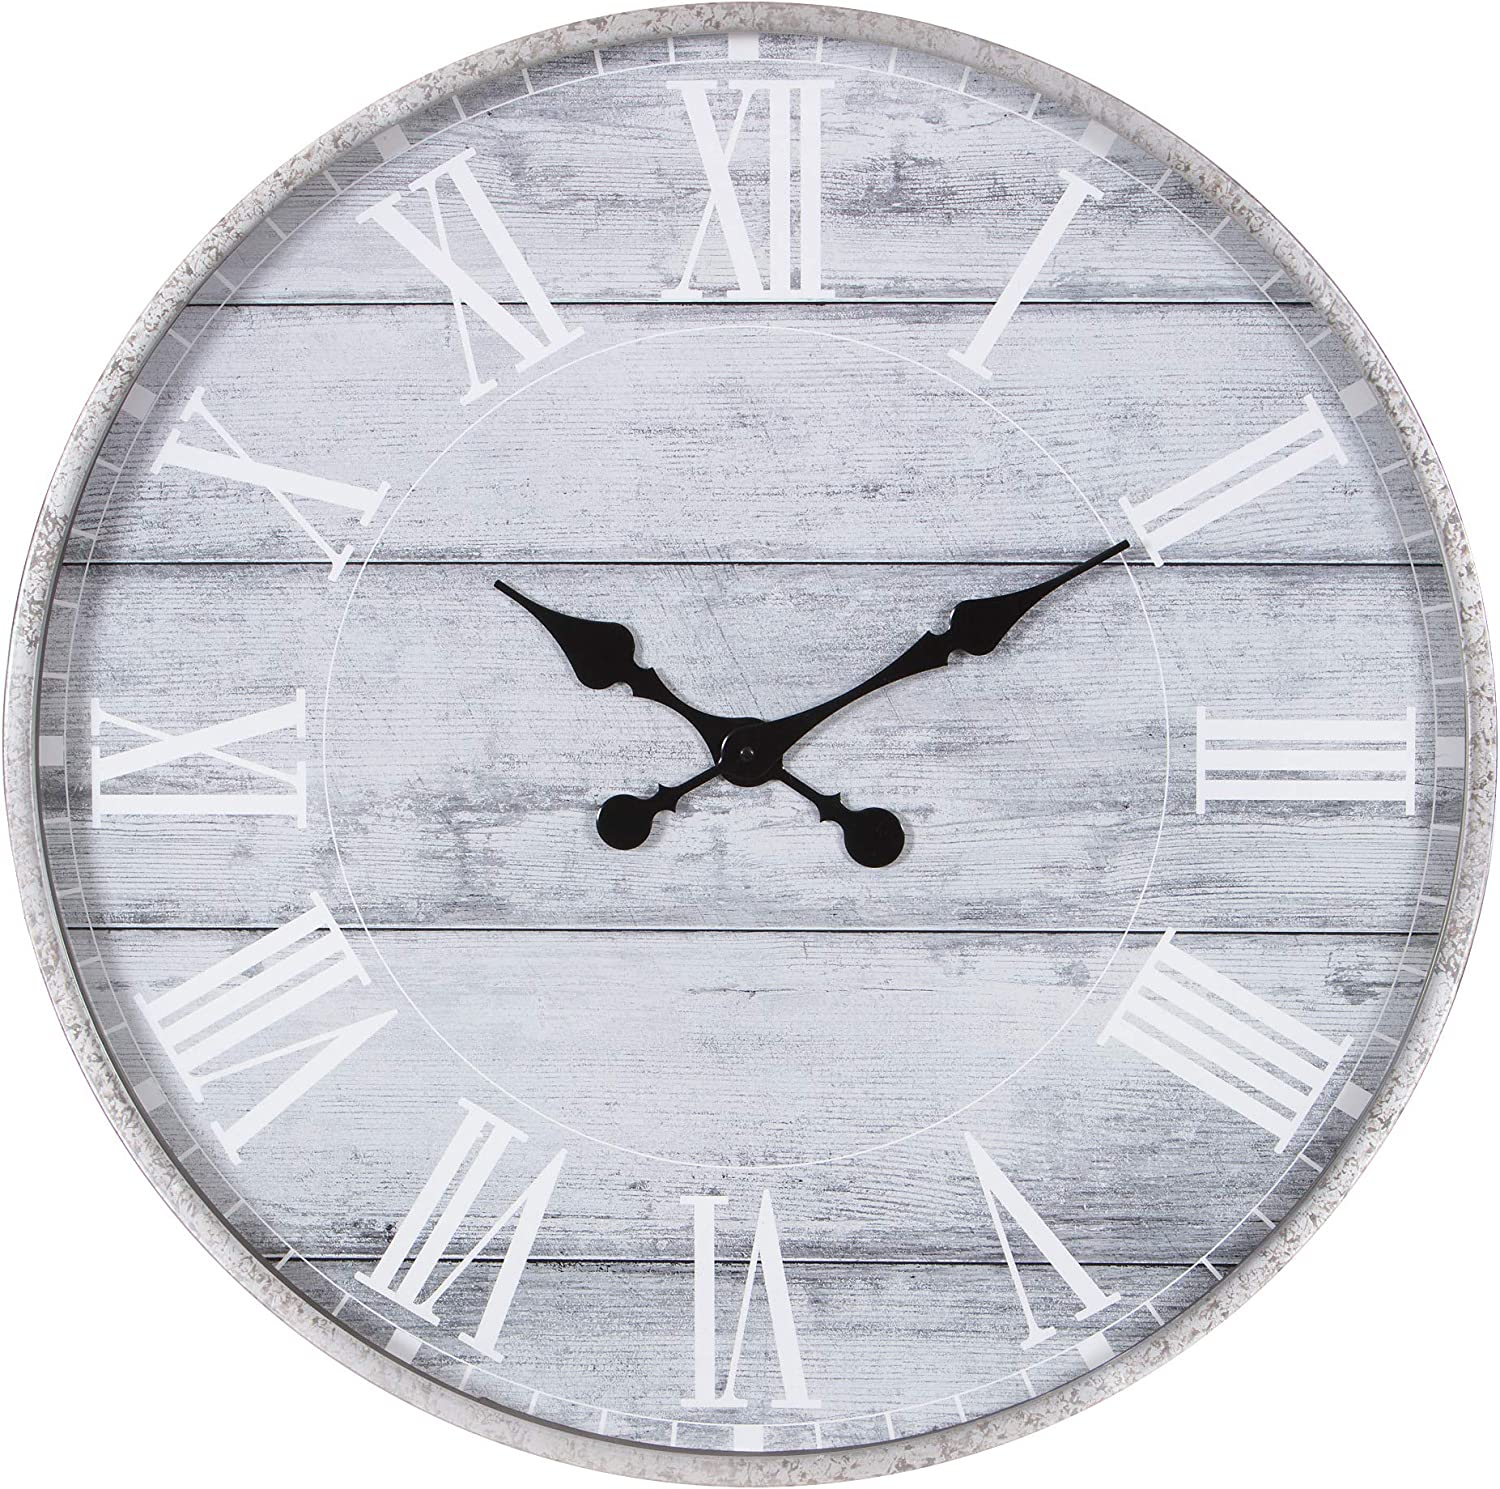 Cussing Cups 1807 3747 28 Galvanized Metal Gray Washed Wood Plank Roman Numeral Round Wall Clock Pack Of 1 Grey Home Kitchen